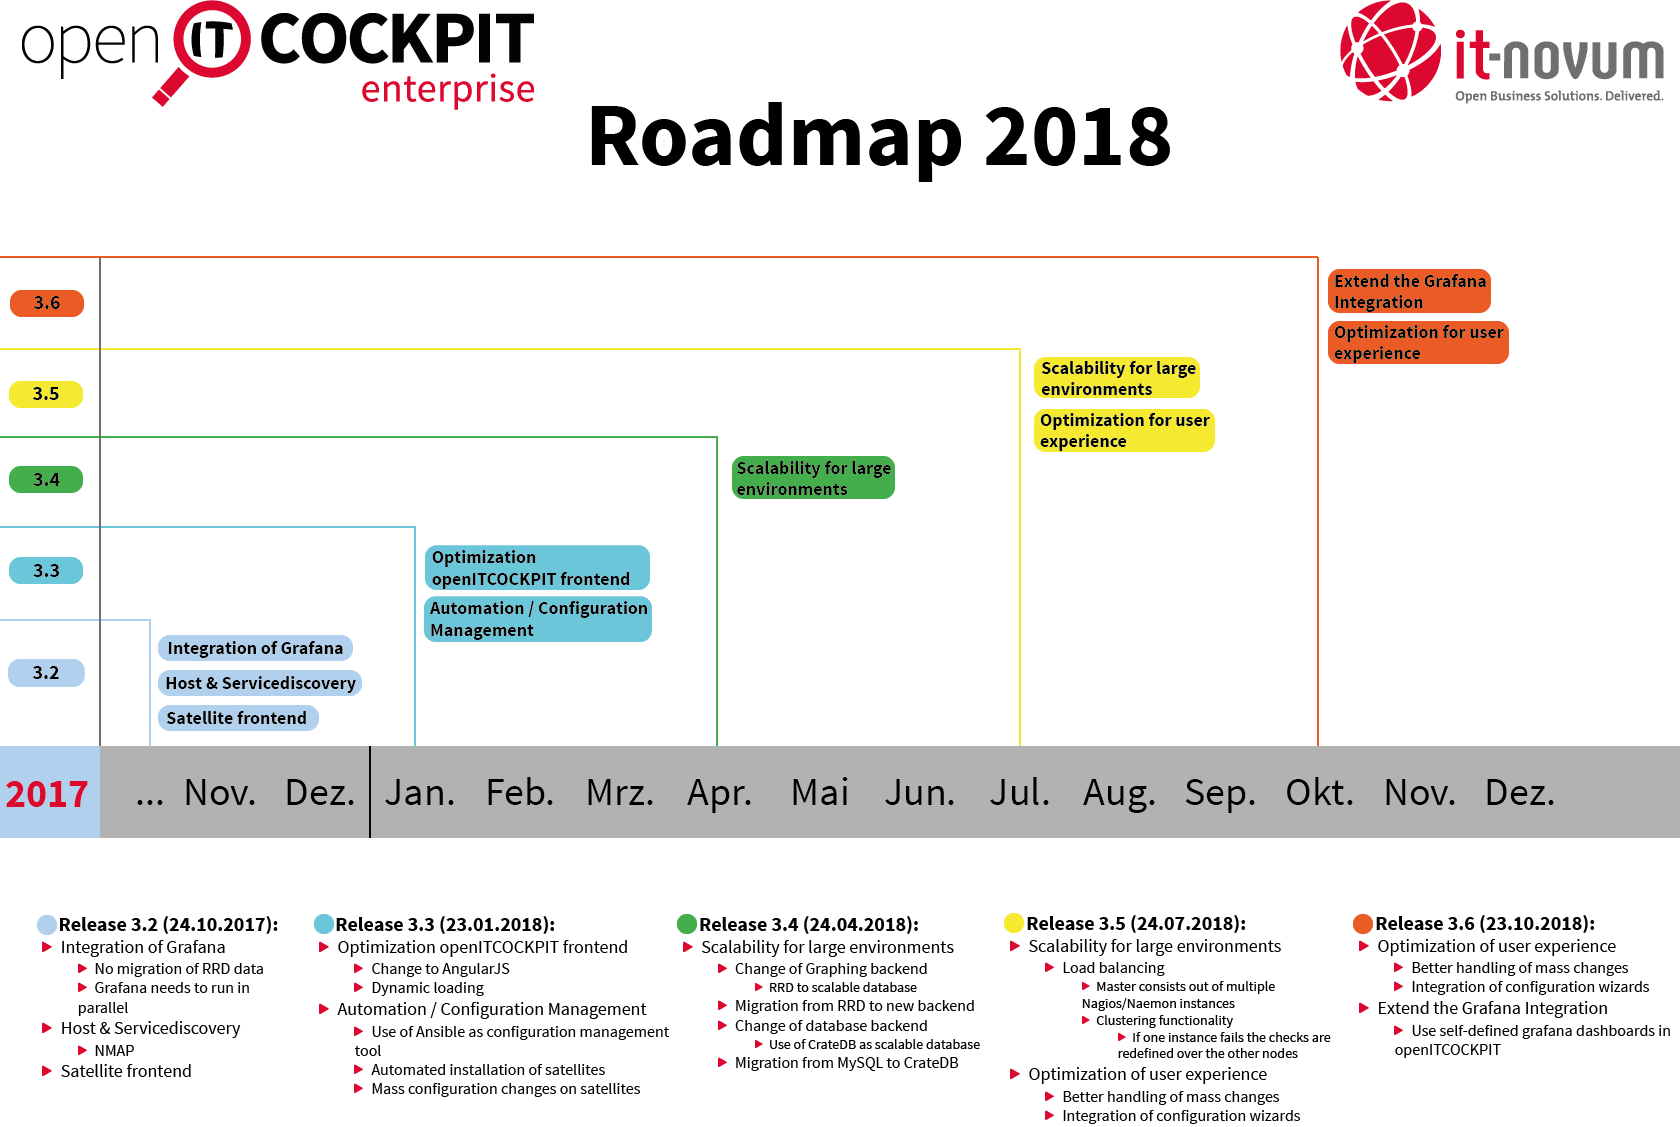 Roadmap openITCOCKPIT